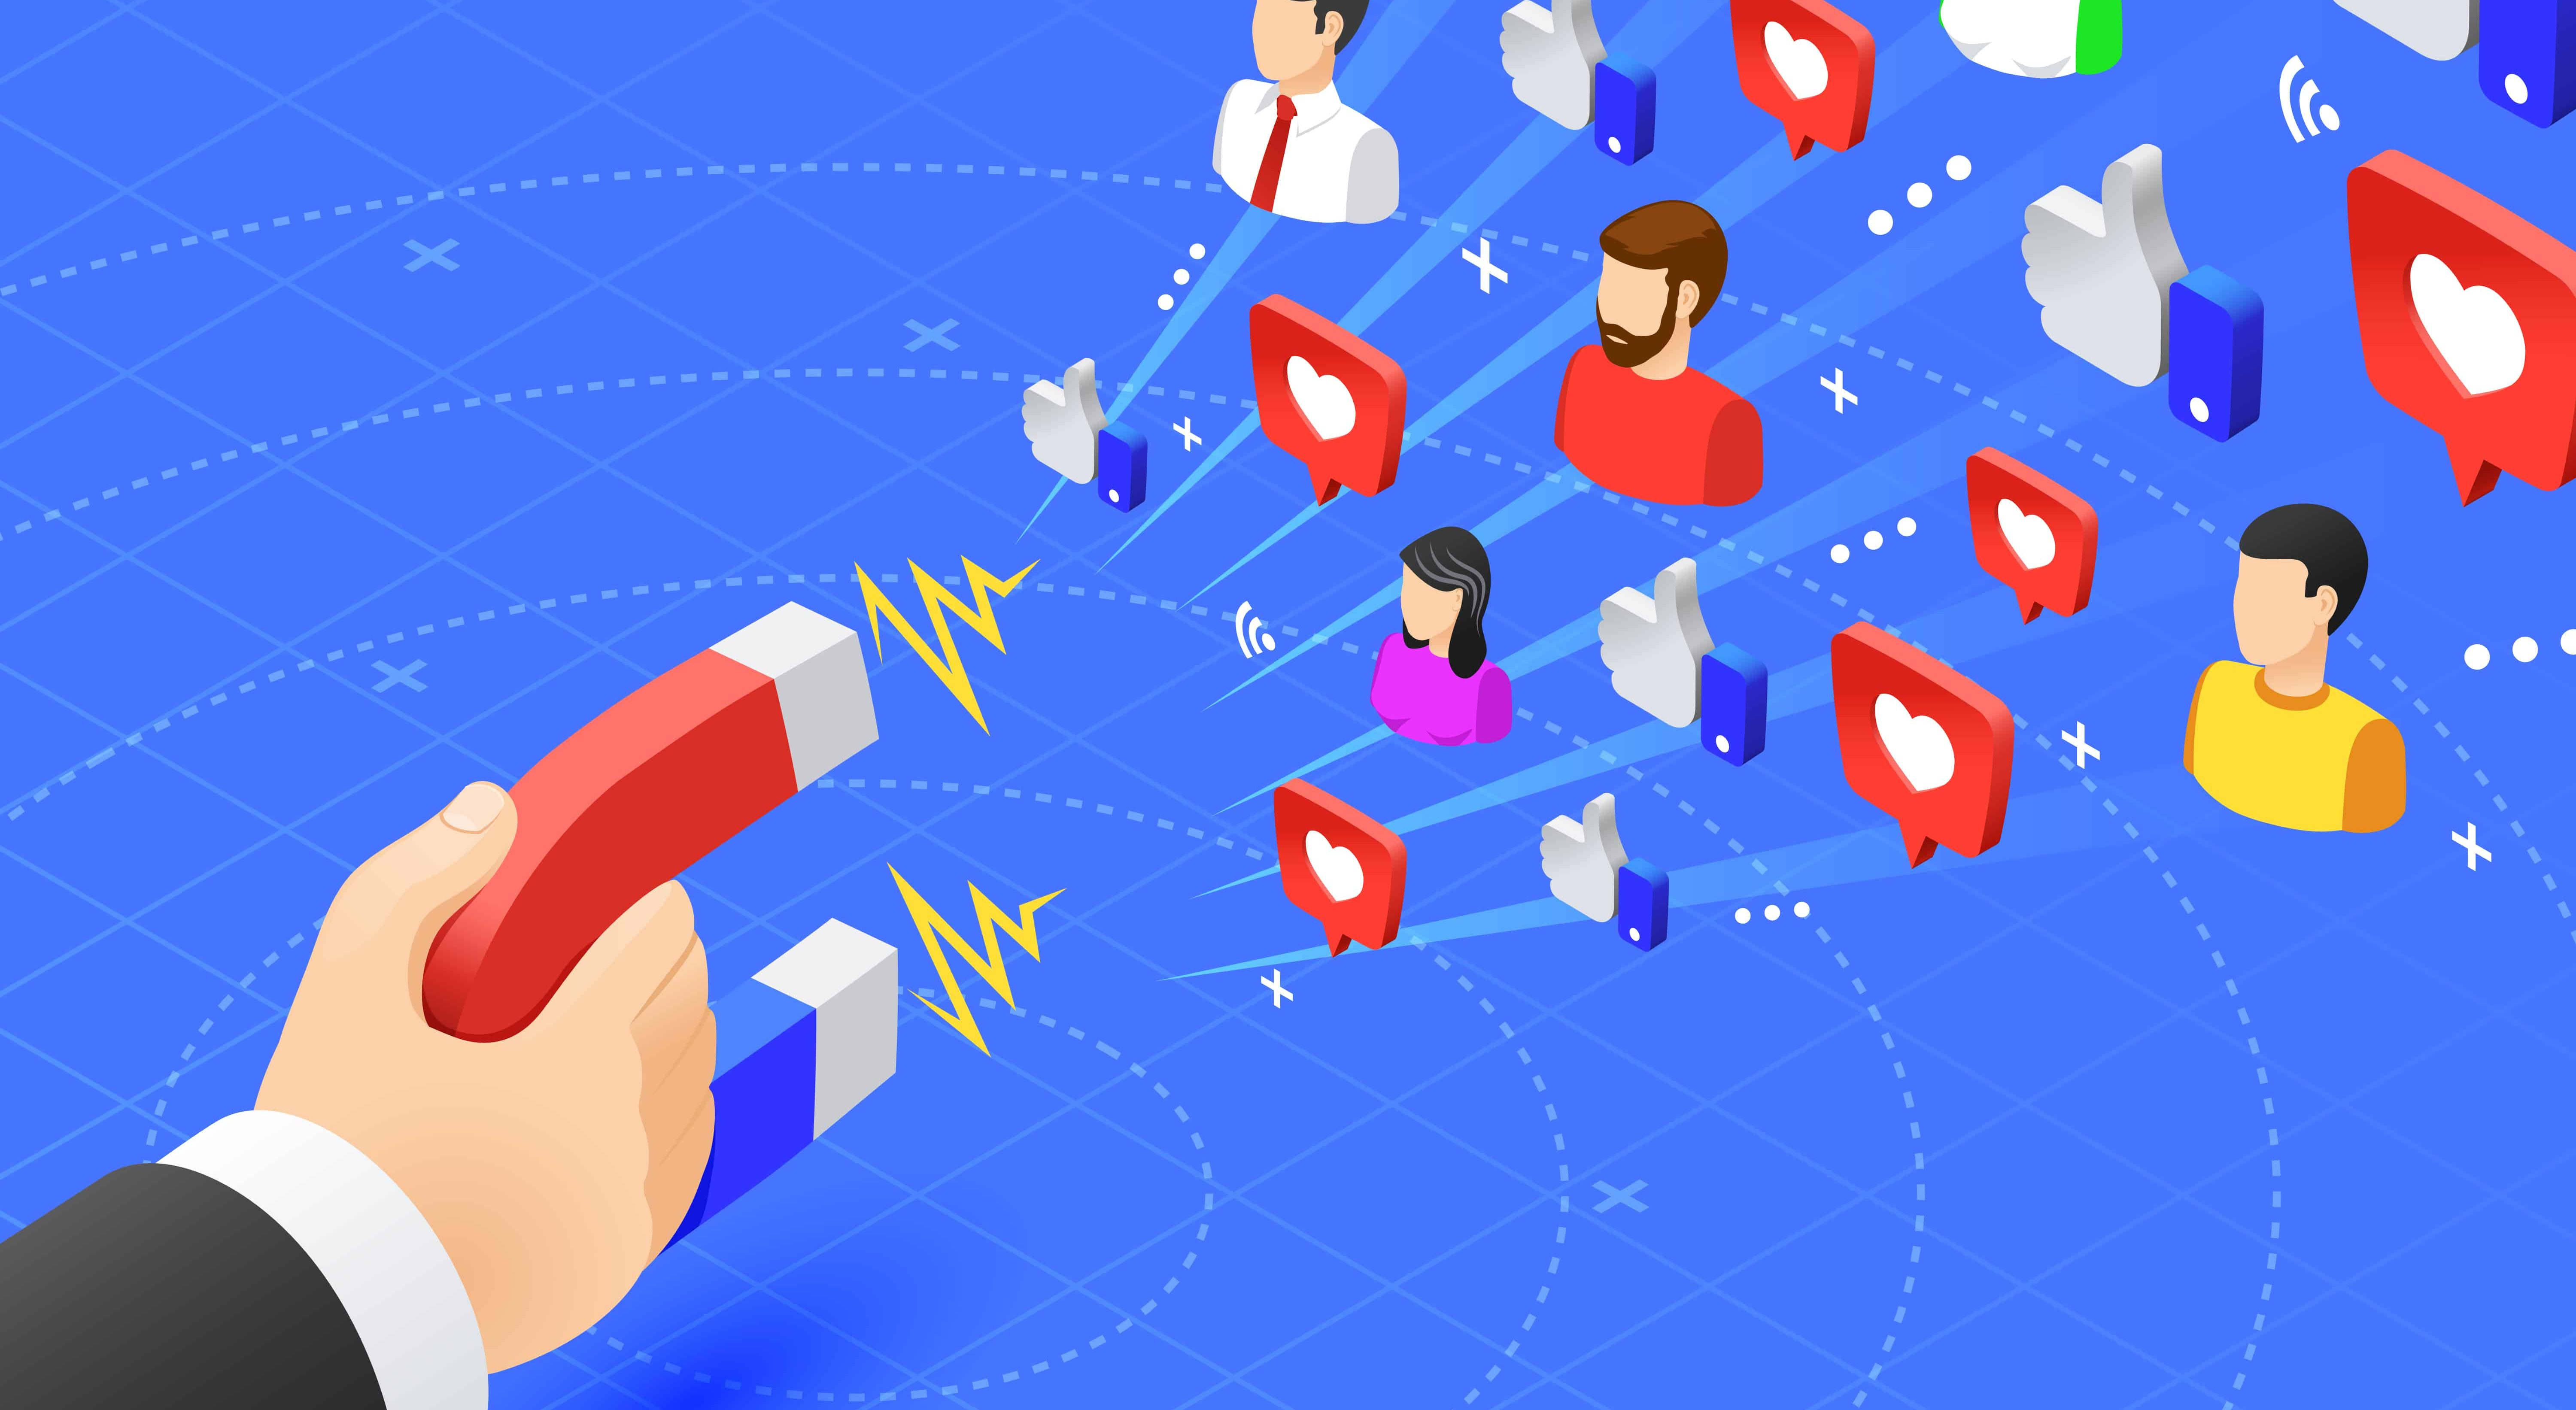 Marketing magnet engaging followers. Social media likes and follows magnetism. Influencer advertise strategy vector illustration